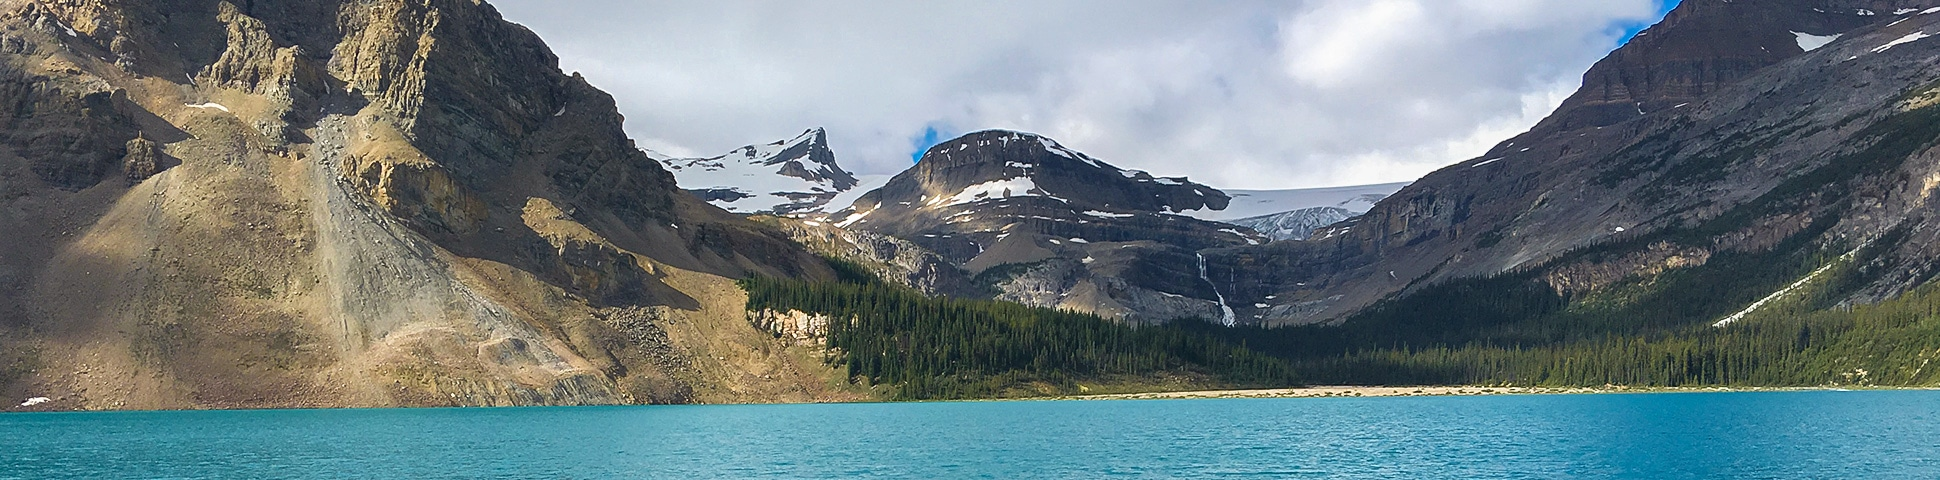 Bow Lake hike from Icefields Parkway in the Canadian Rockies